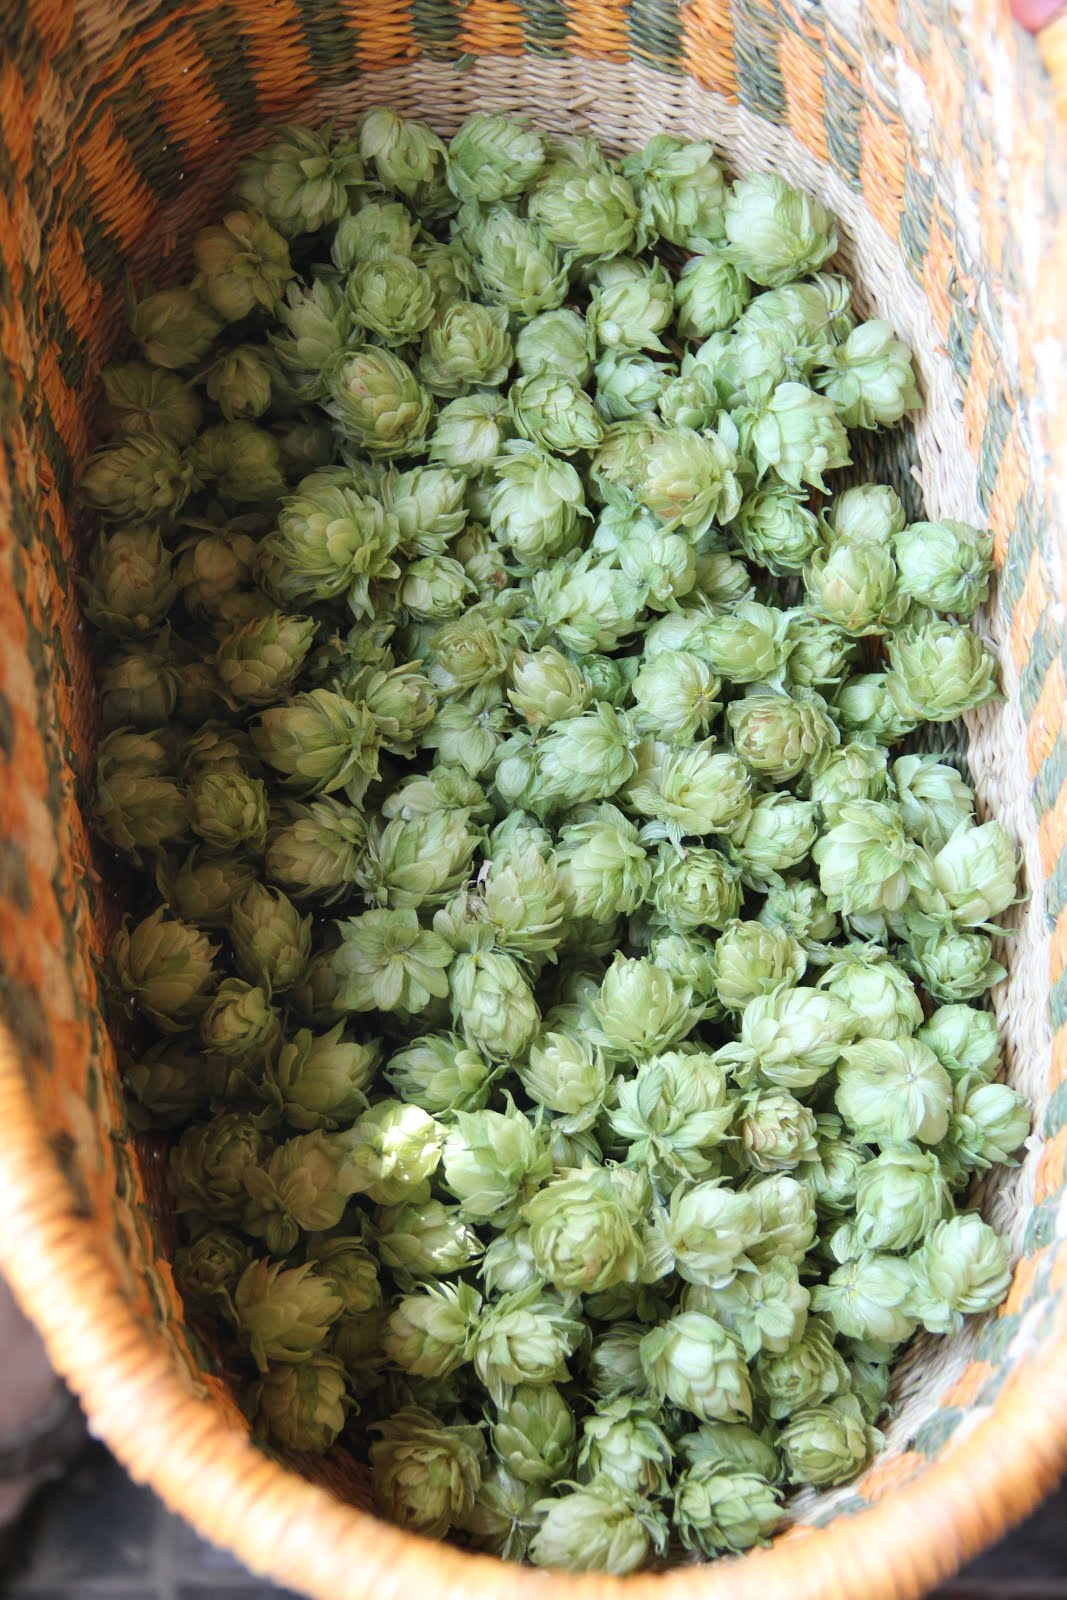 HOPS For MedicineI